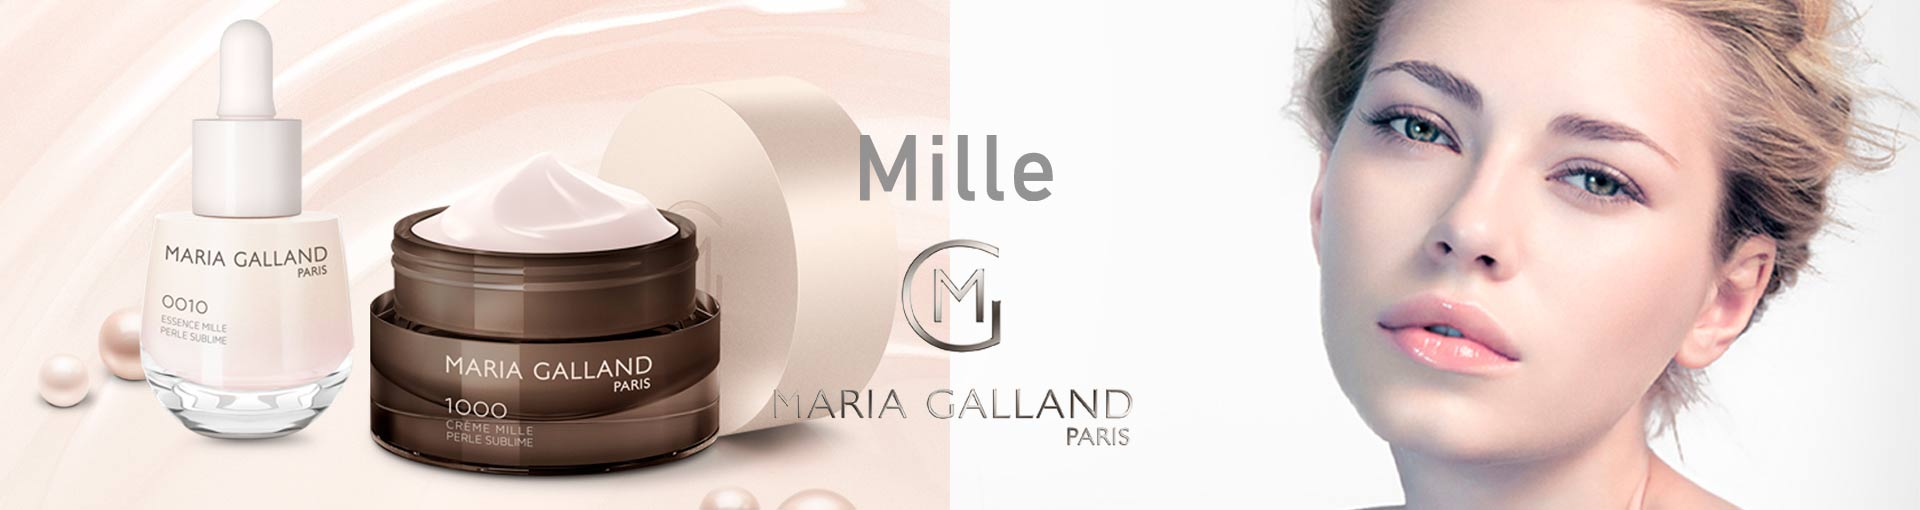 Mille Maria Galland